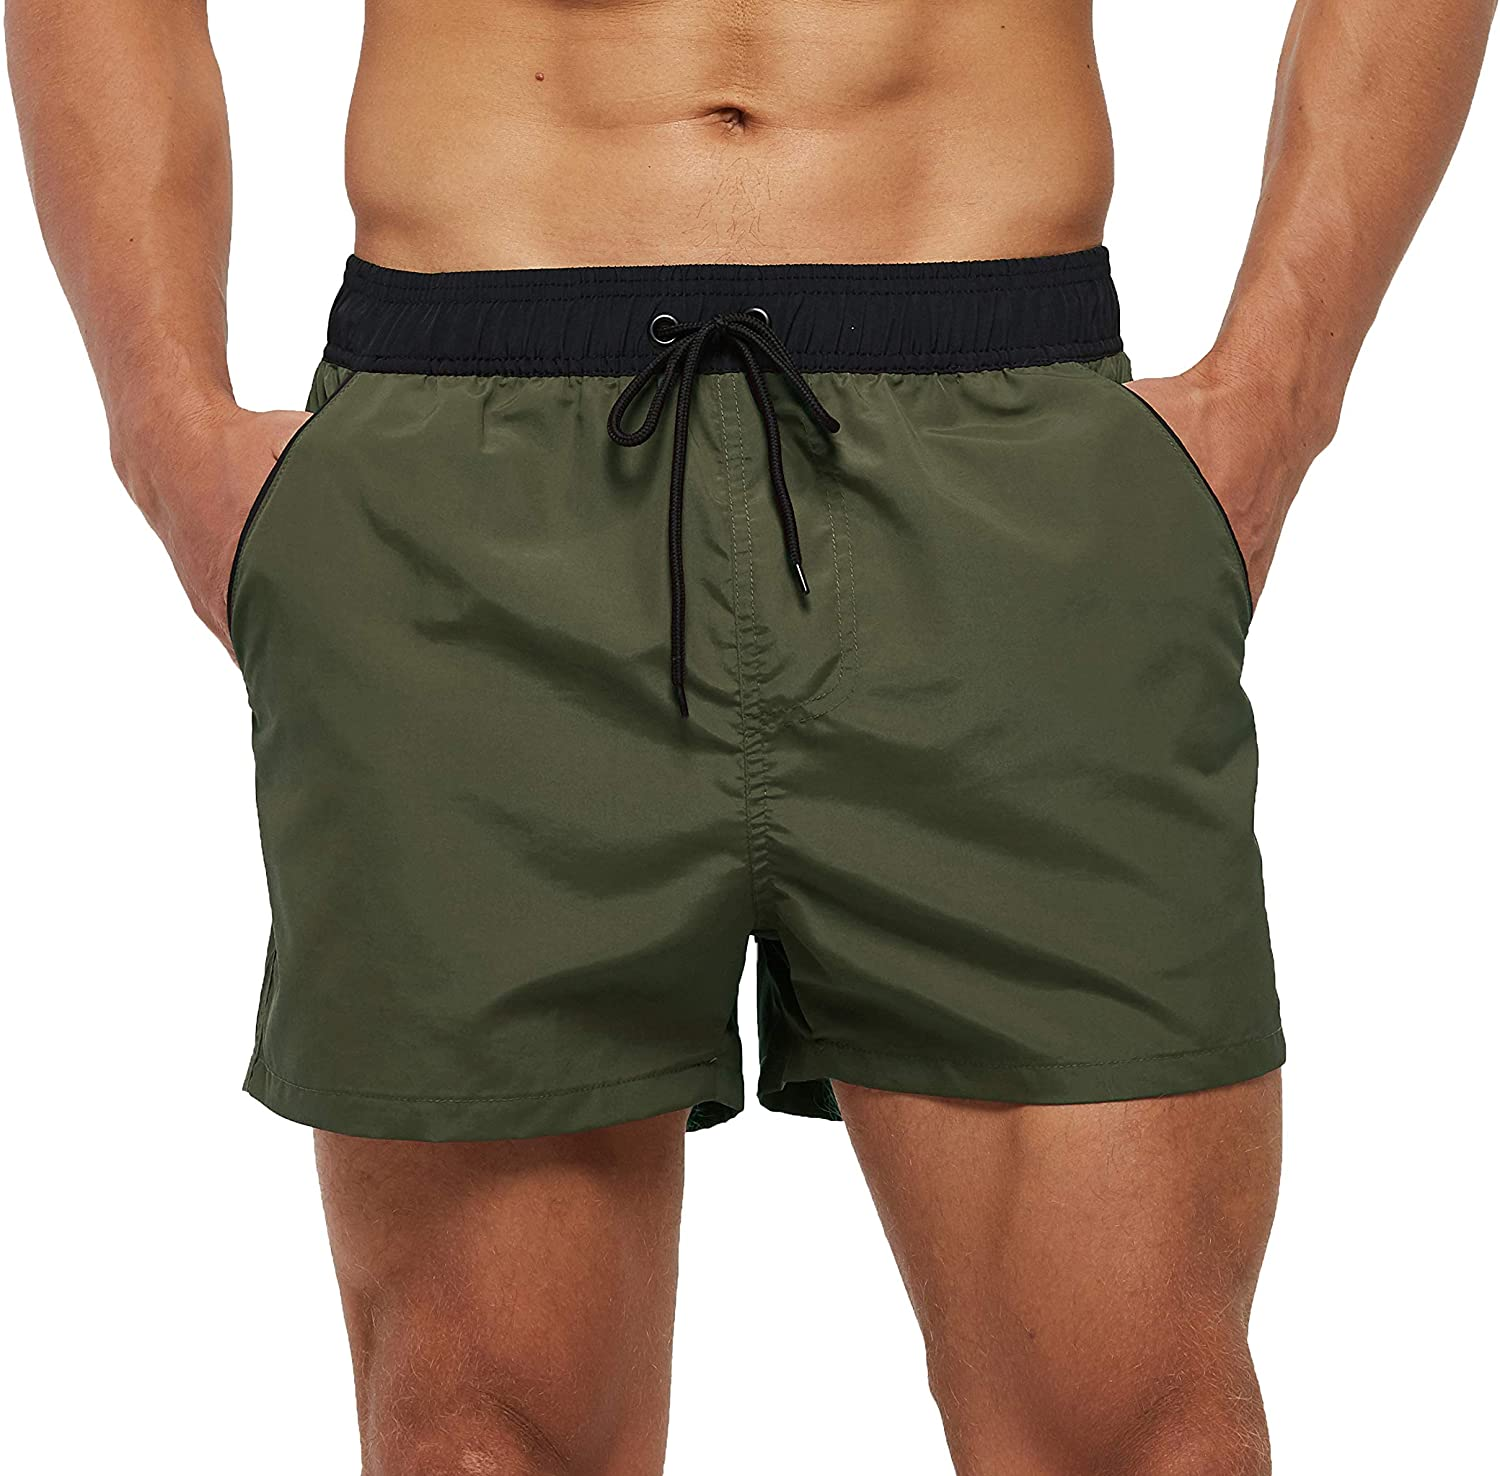 SILKWORLD Men's Quick Dry Swim Trunks Solid Swimsuit Sports Shorts with Back Zipper Pockets: Clothing